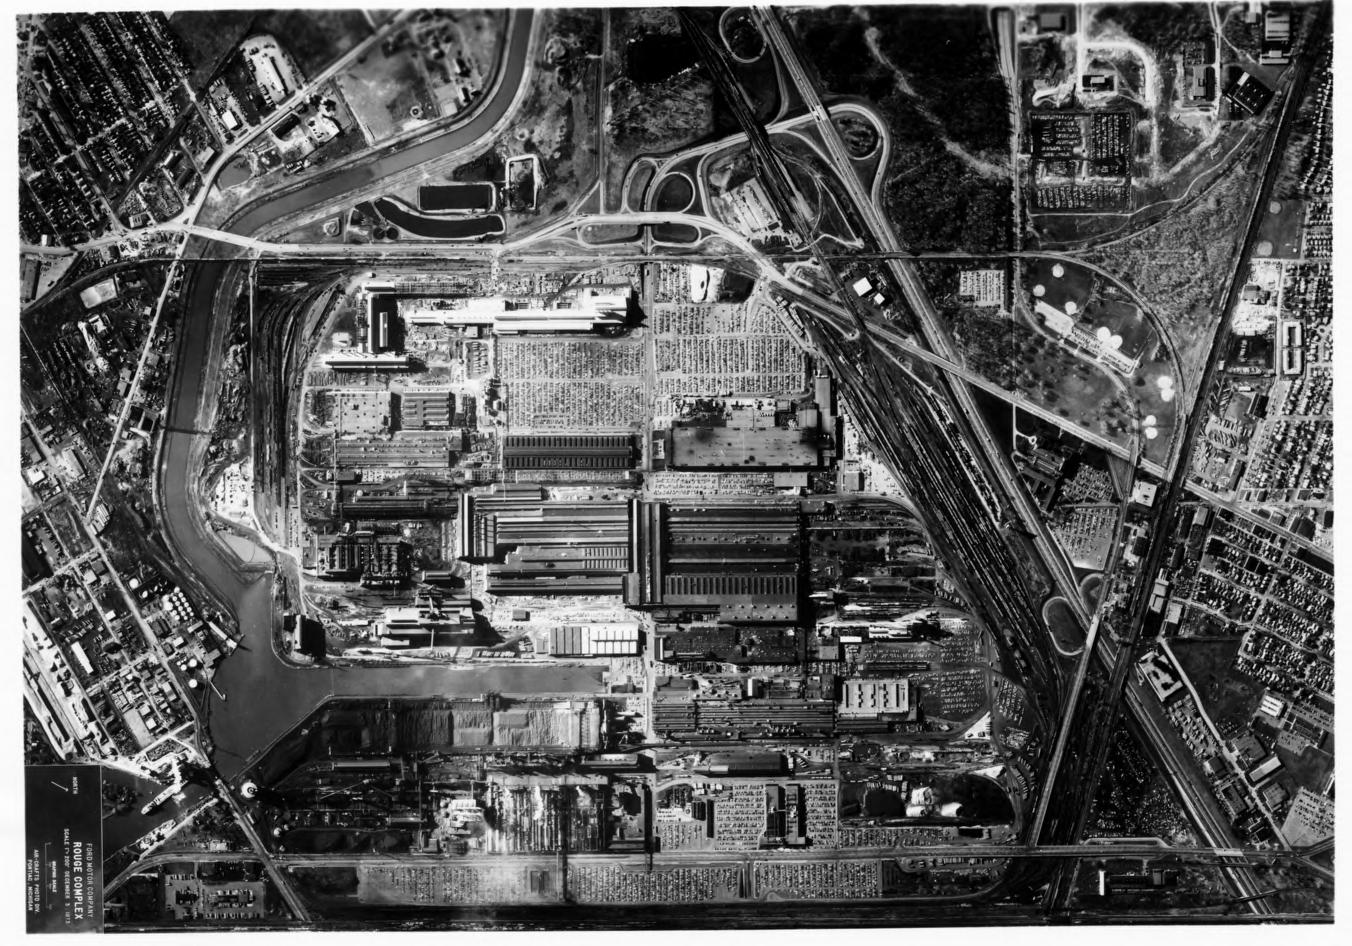 Ford River Rouge Plant 1975 - Luftbild